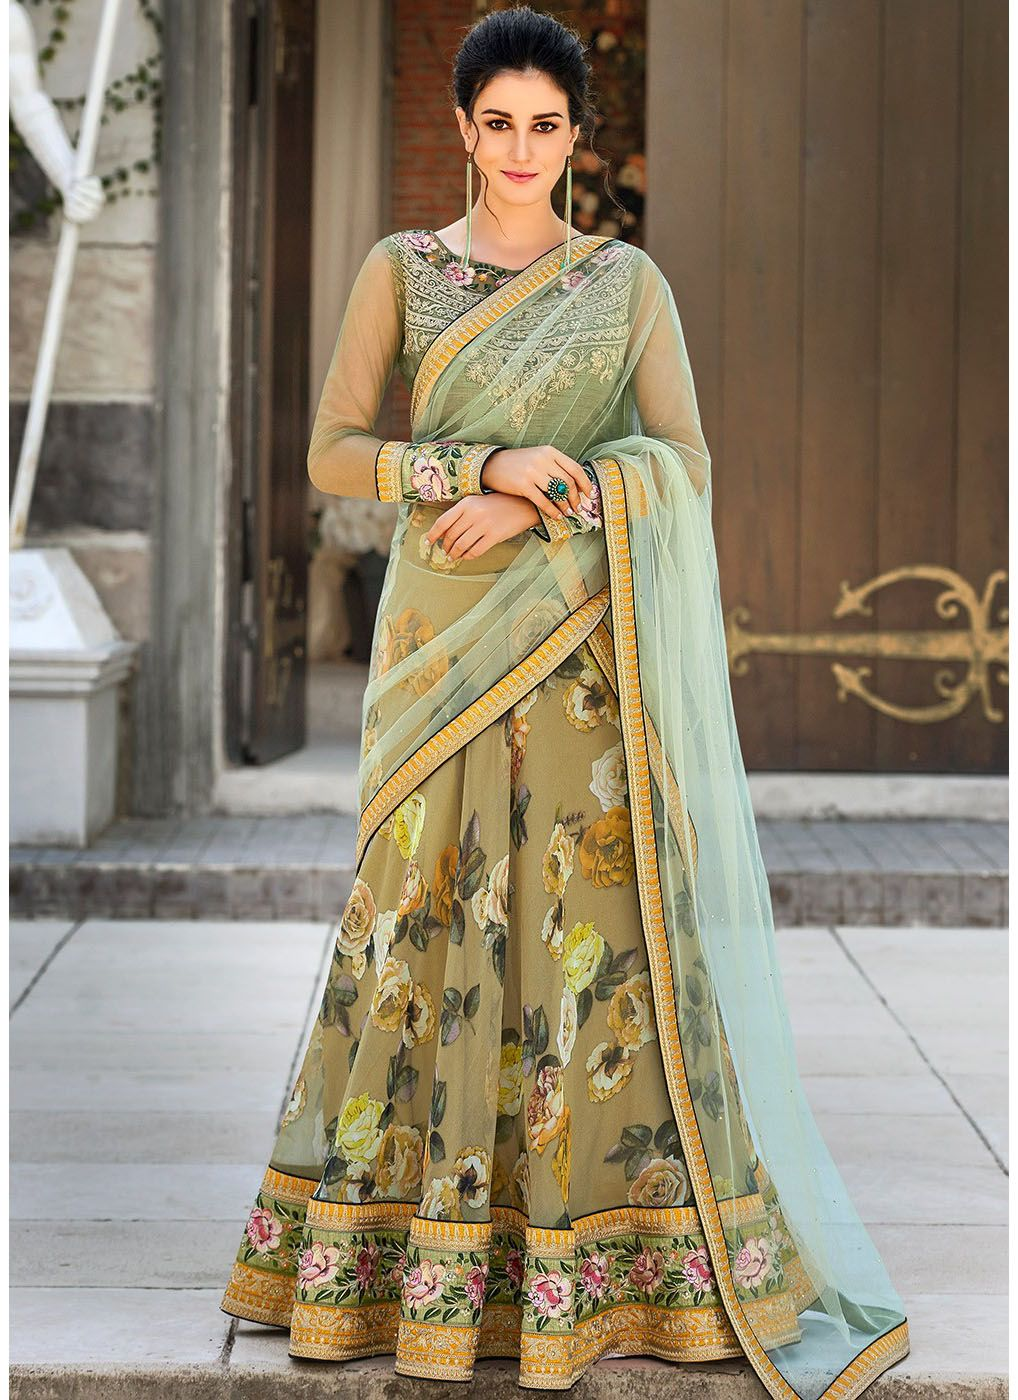 Digital Floral Printed Organza Lehenga in Olive Green